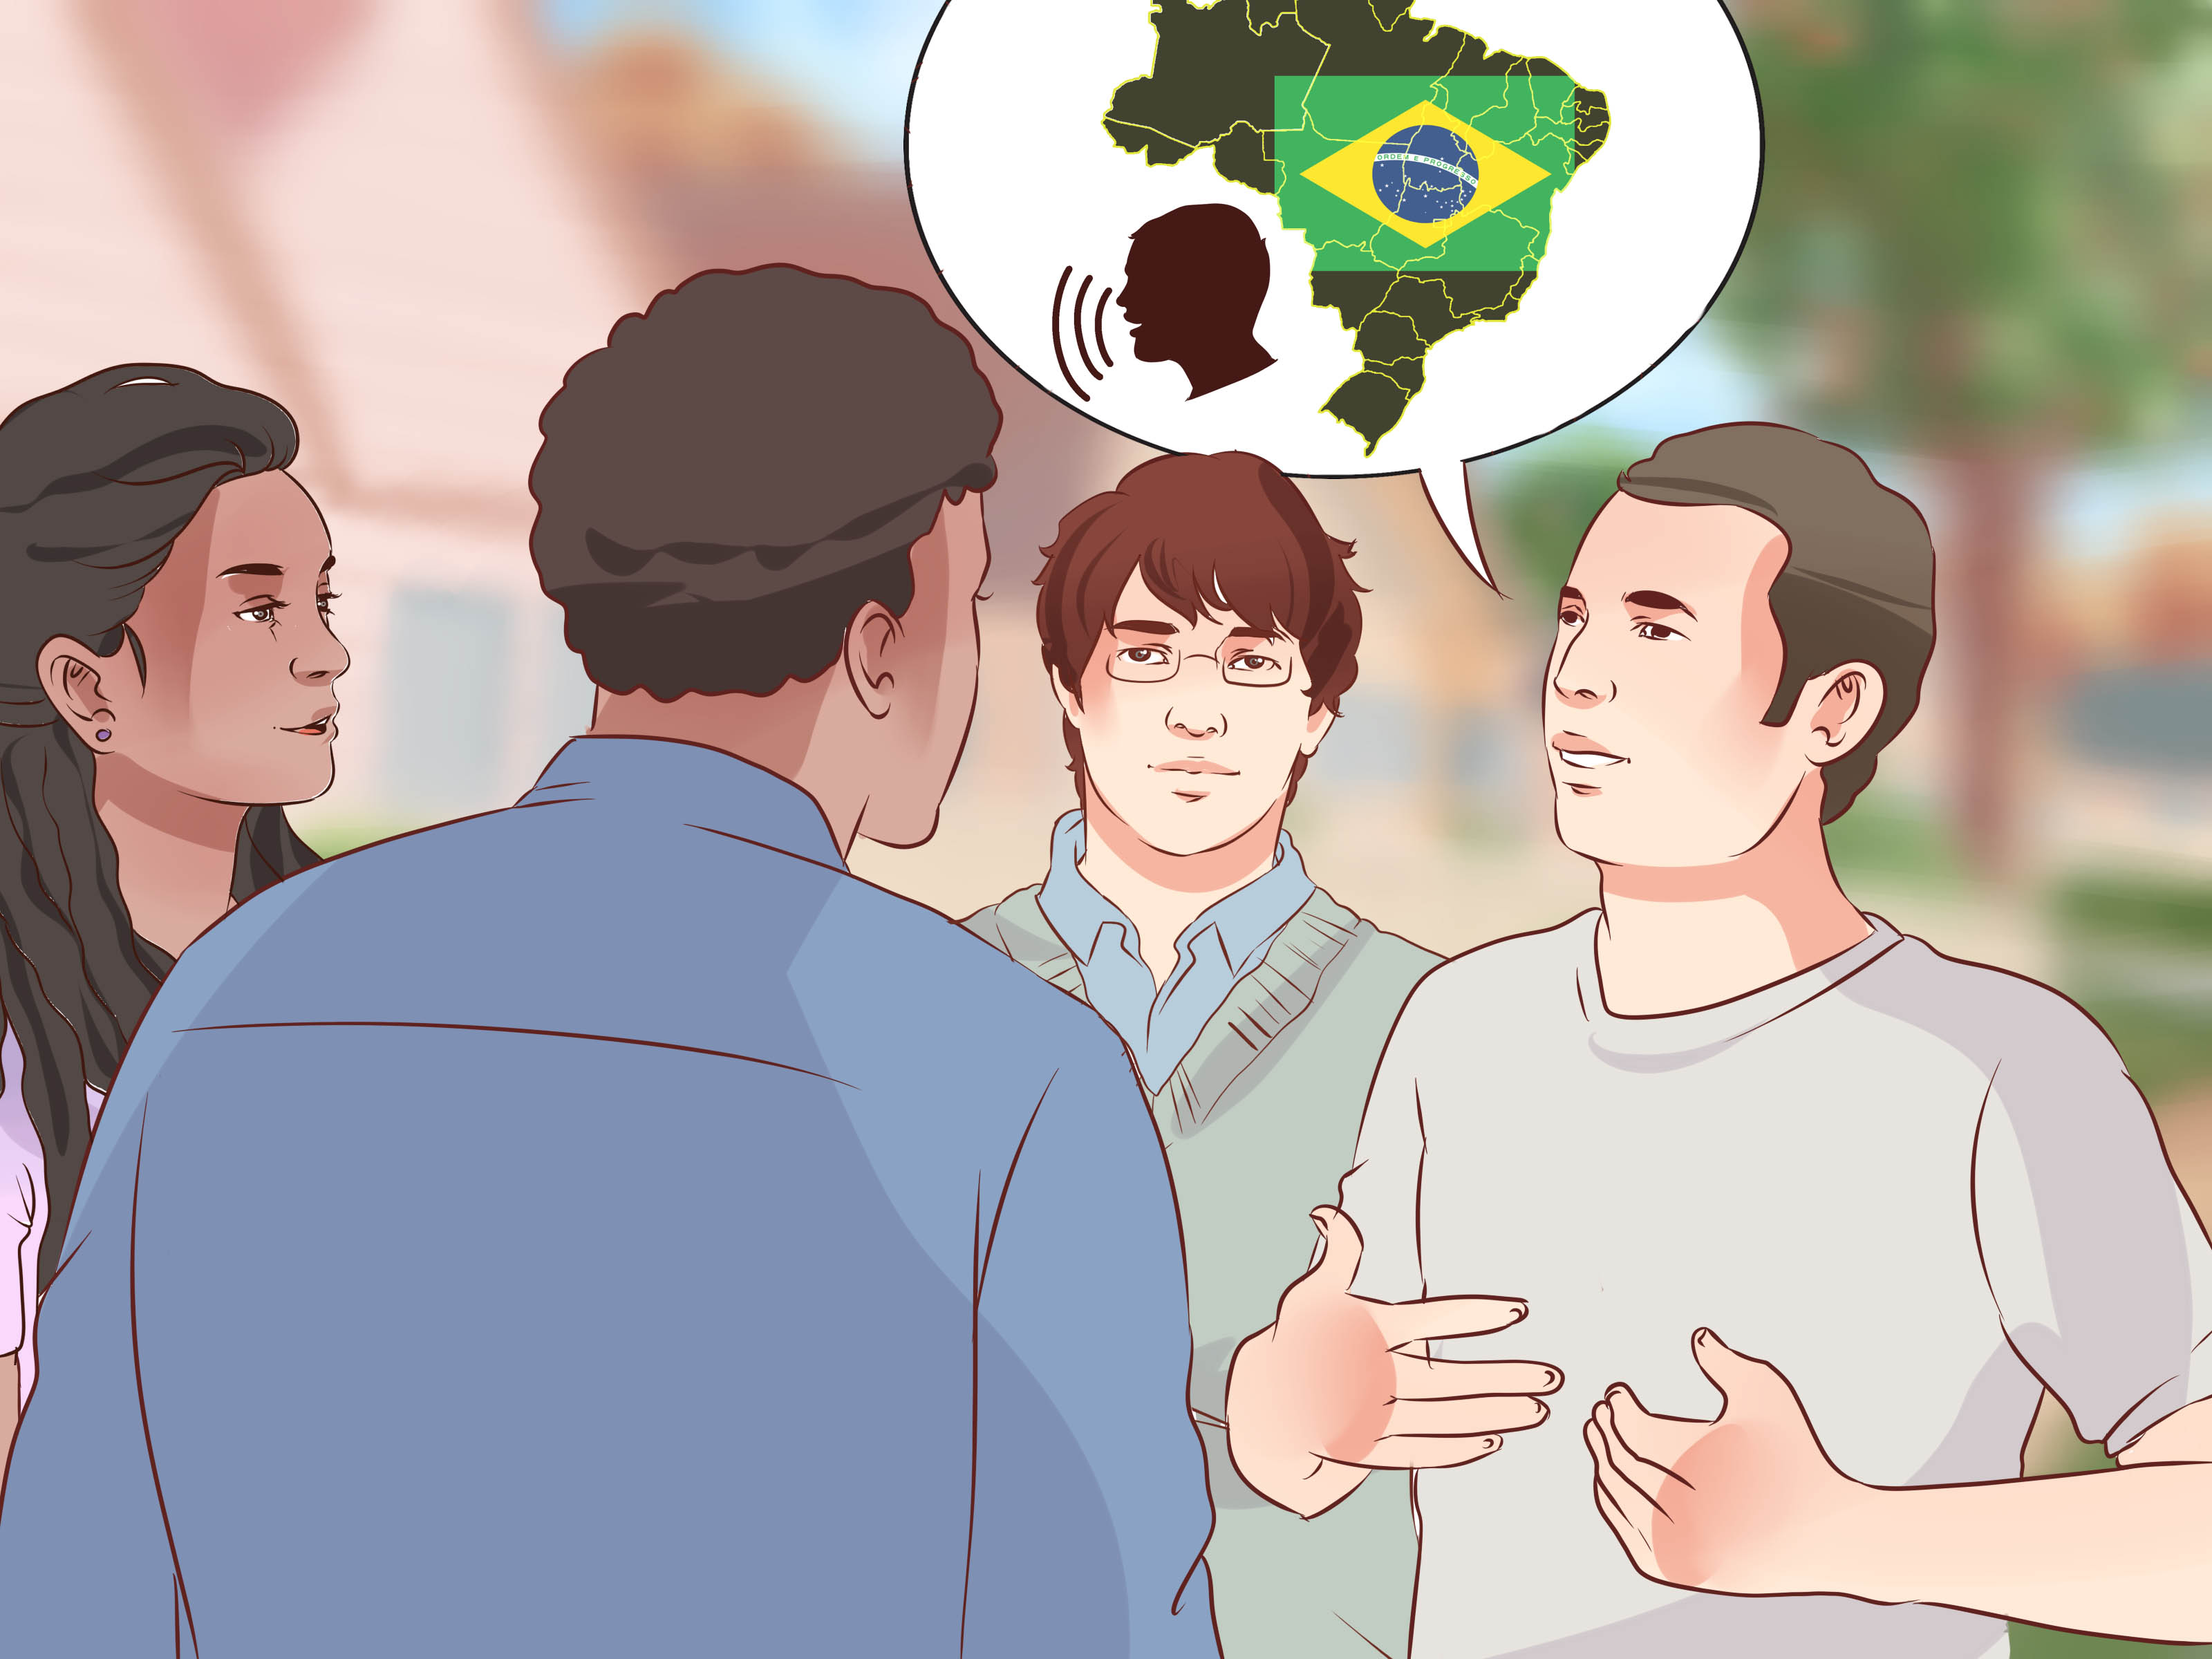 How To Speak Brazilian Portuguese With Pictures